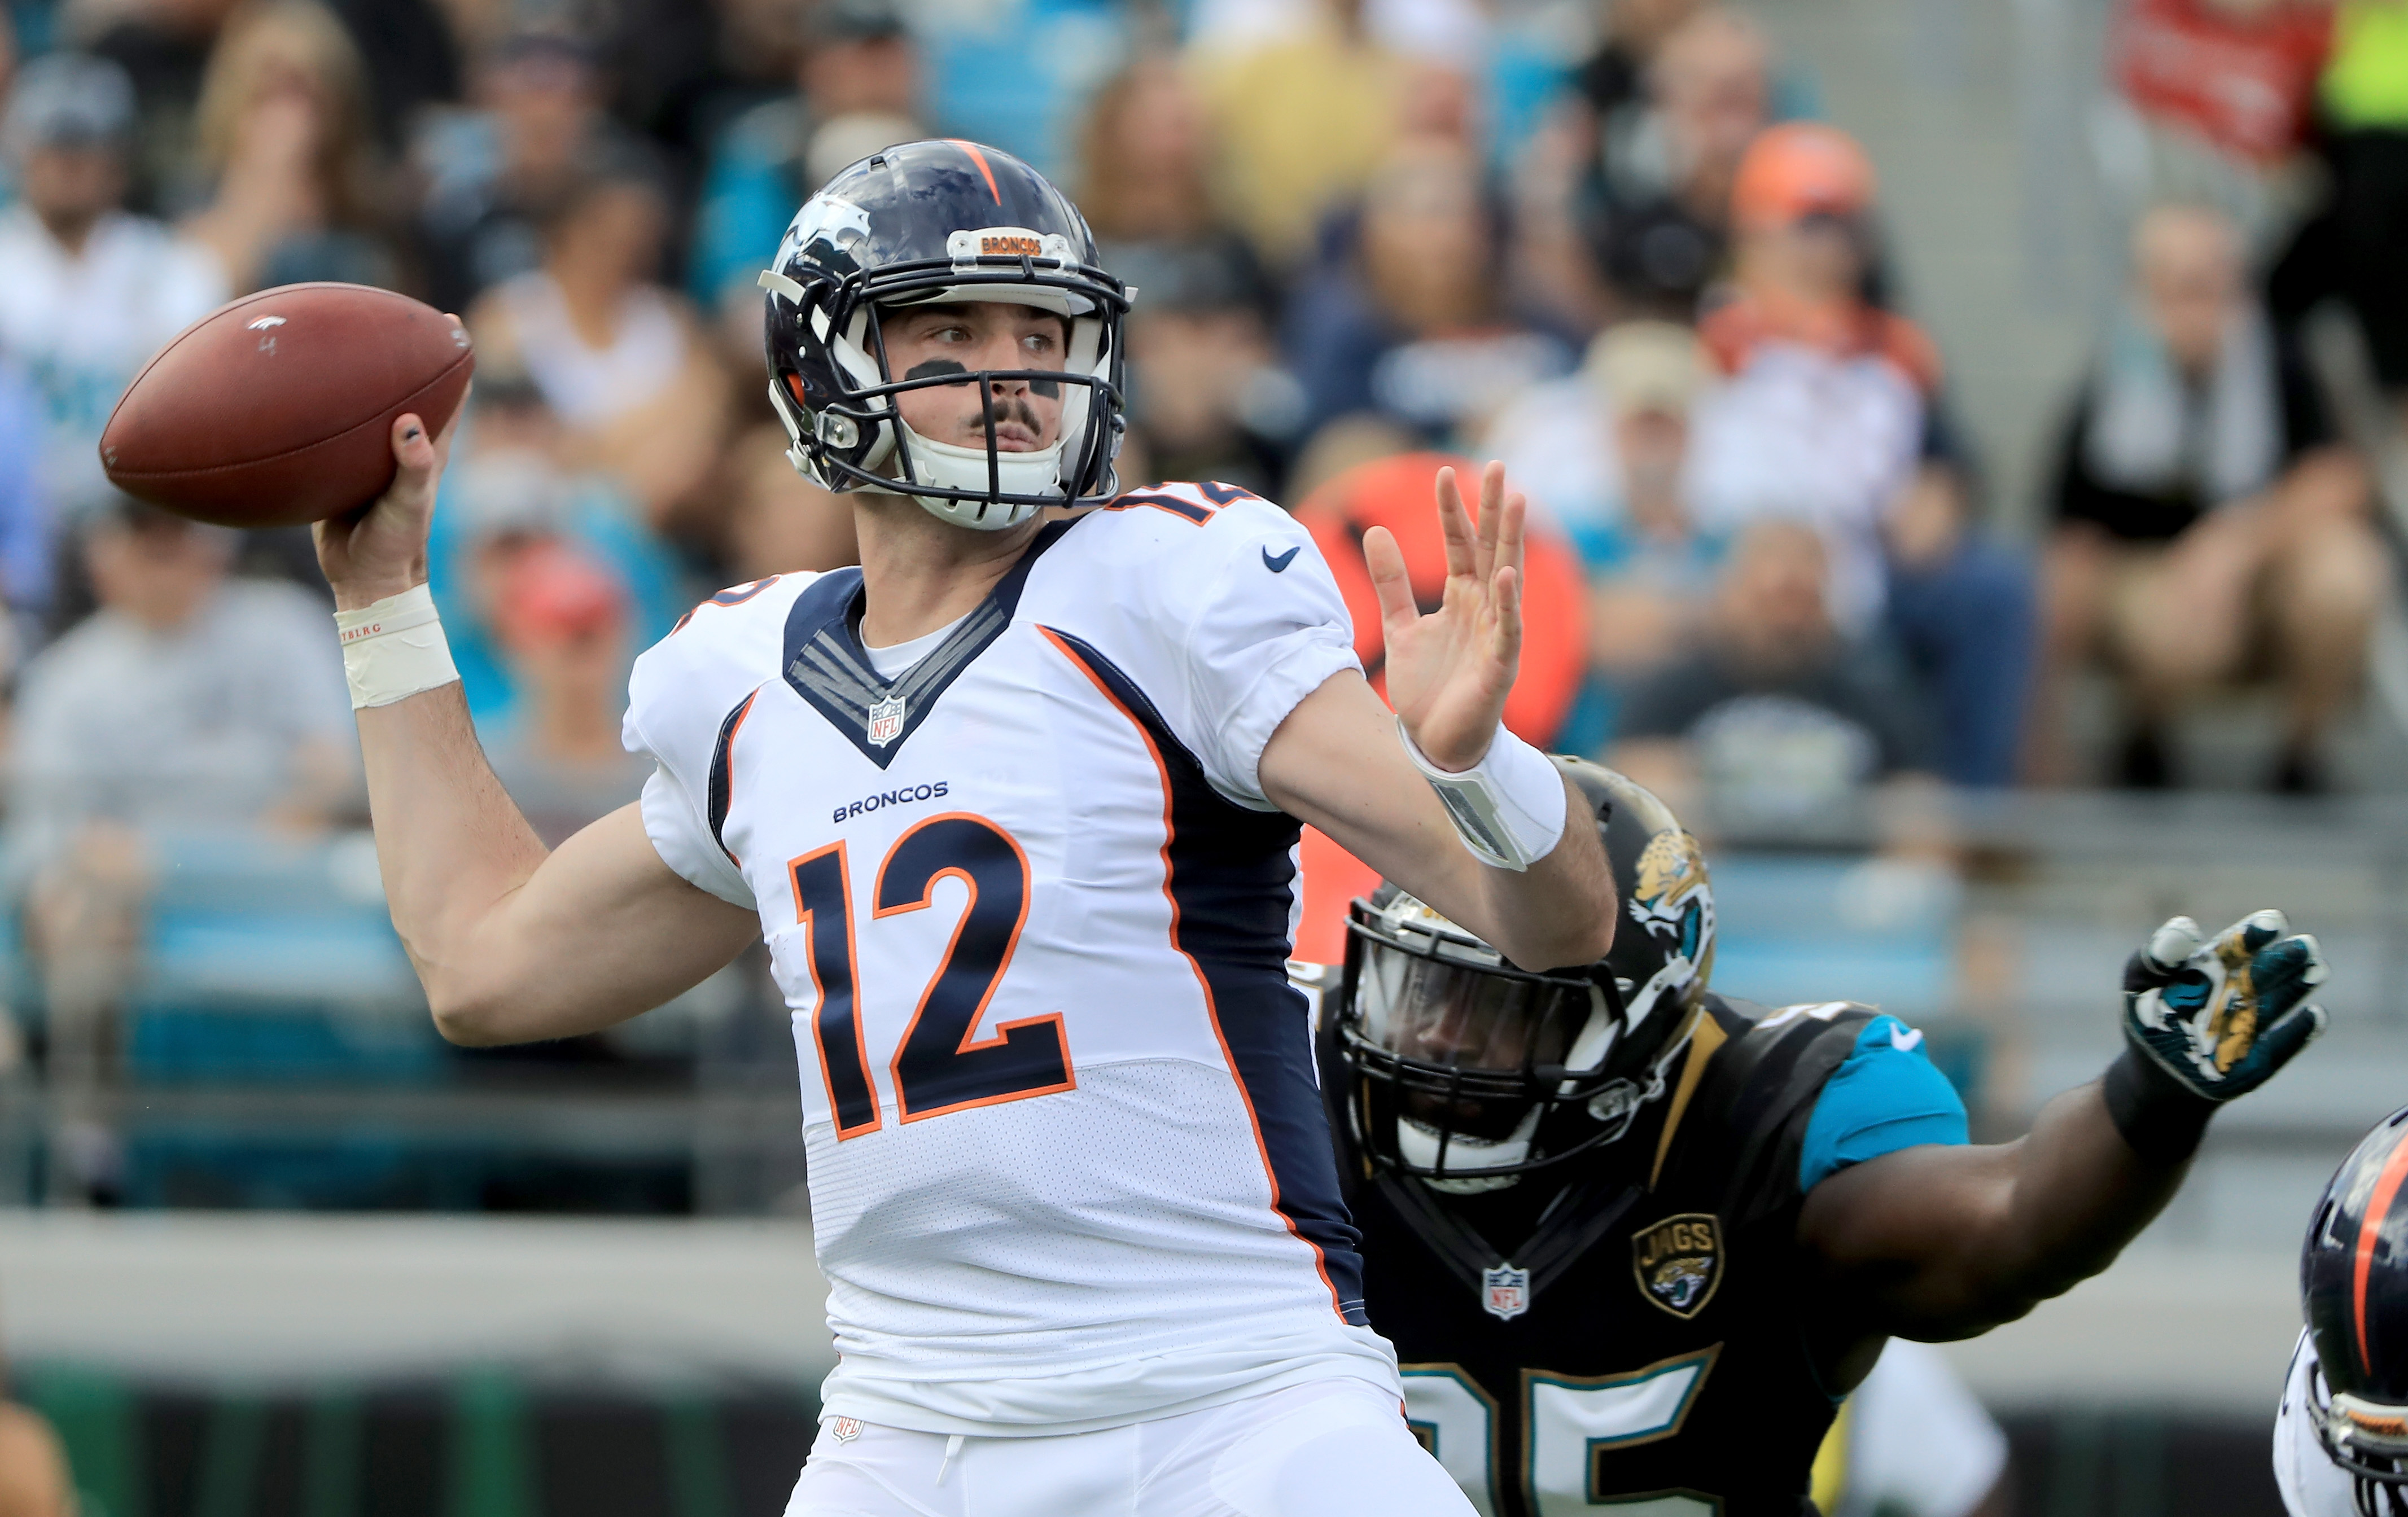 Paxton Lynch #12 of the Denver Broncos attempts a pass as Abry Jones #95 of the Jacksonville Jaguars closes in at EverBank Field on December 4, 2016 in Jacksonville, Florida. (Photo by Sam Greenwood/Getty Images)